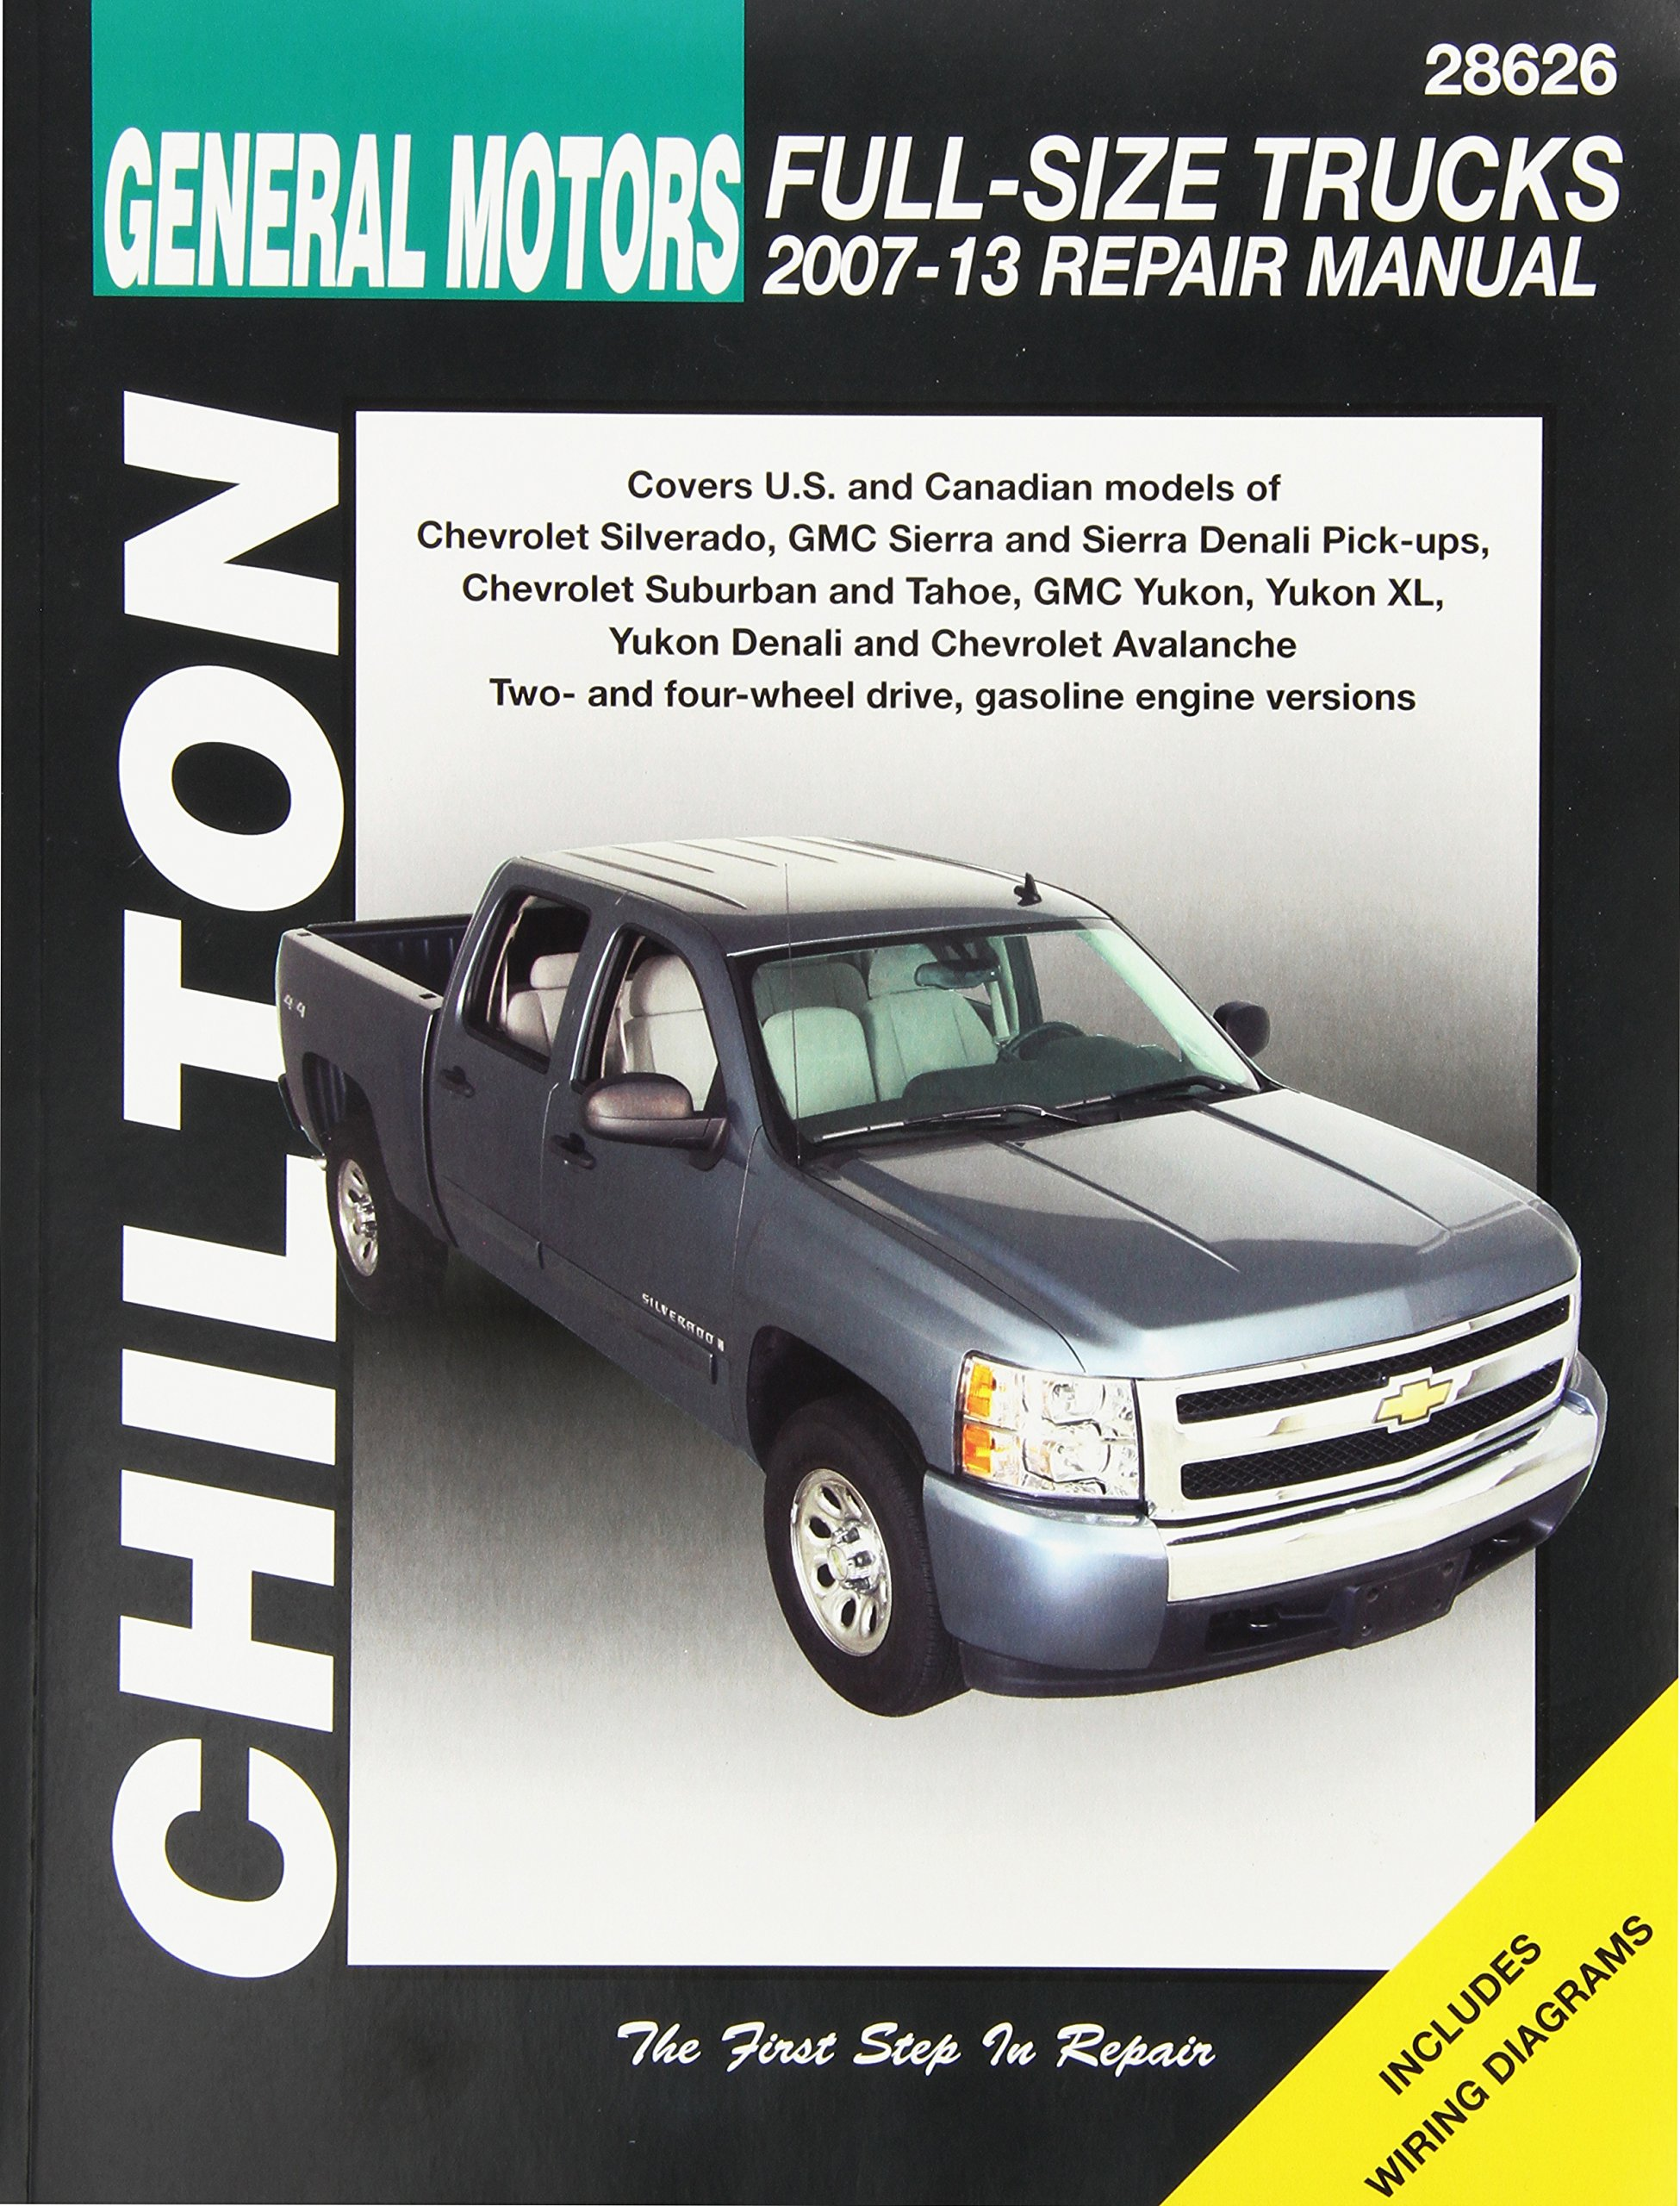 amazon com gm full size trucks chilton repair manual 2007 2012 rh amazon com 2005 chevy tahoe service manual pdf 2005 Chevy Tahoe Fuse Diagram